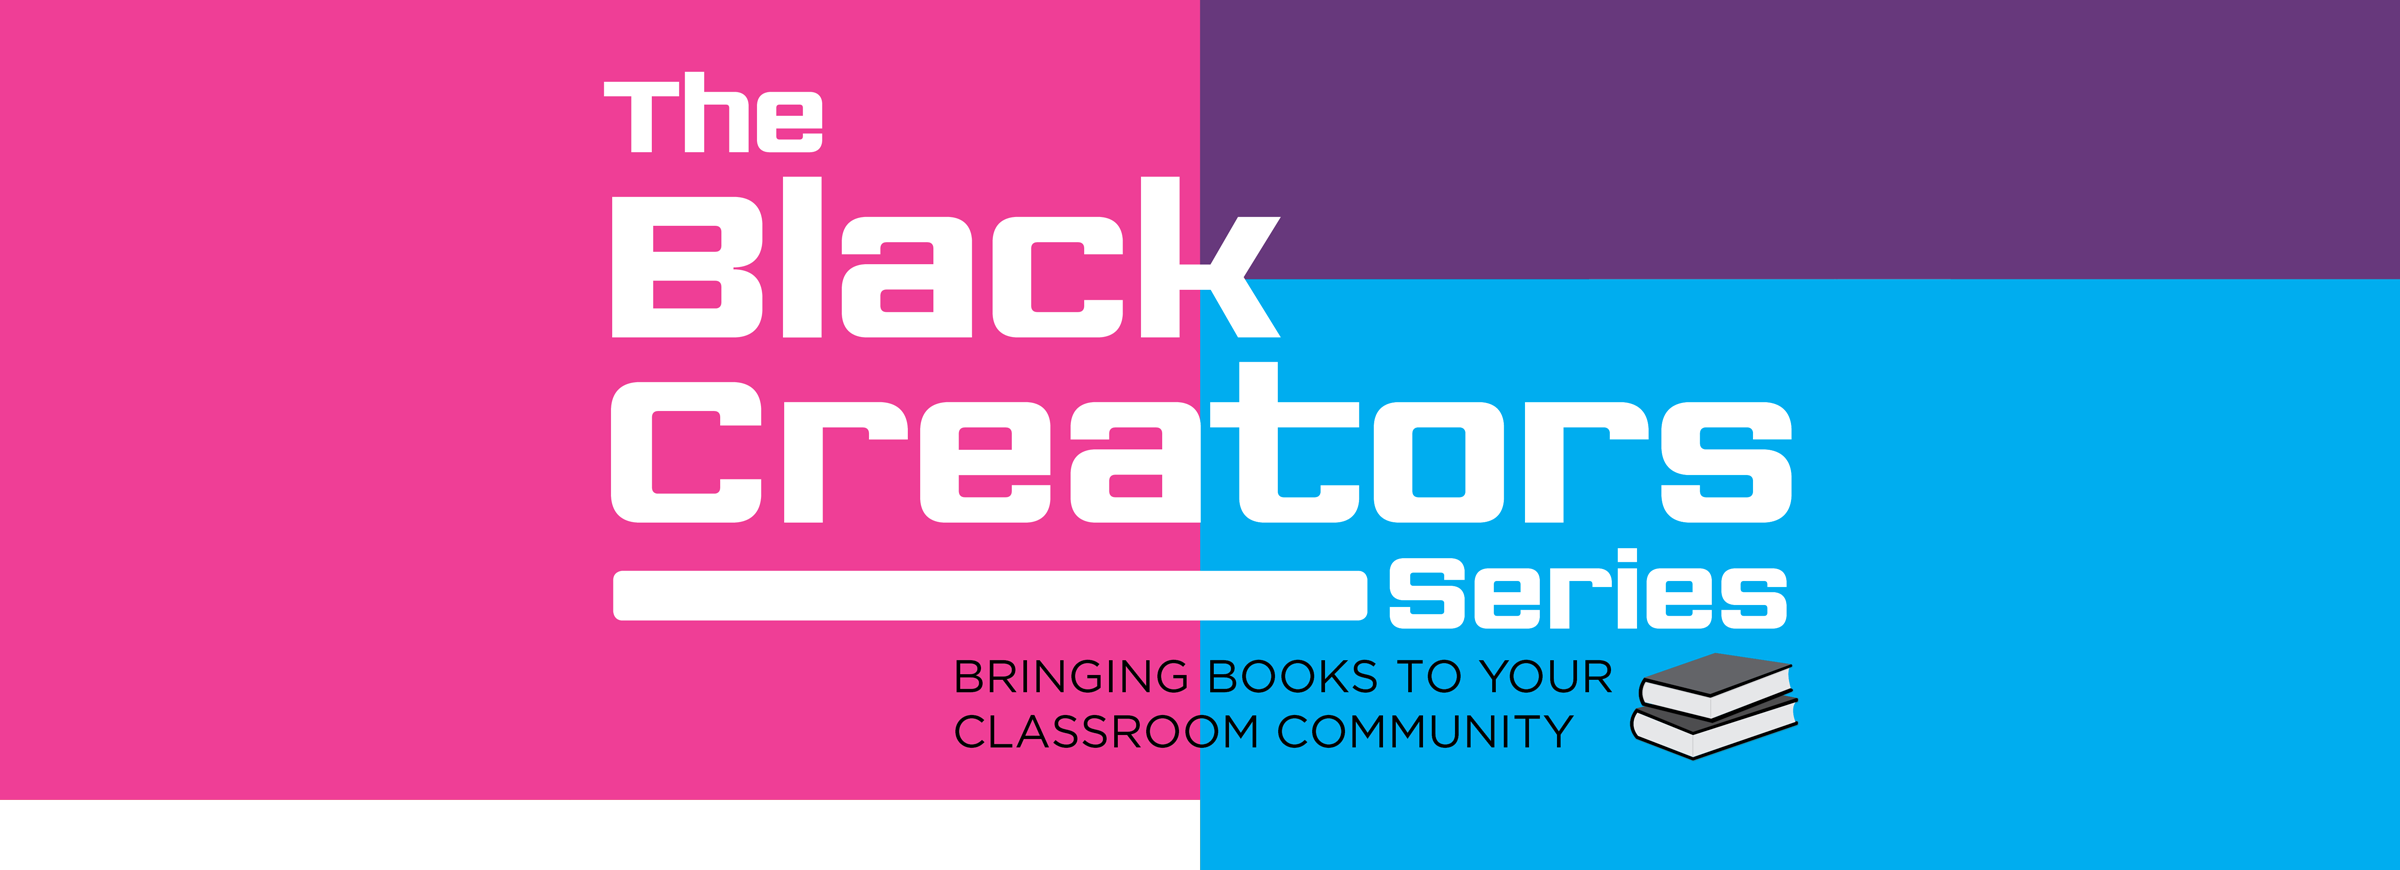 The Black Creators Series - Bringing books to your classroom community